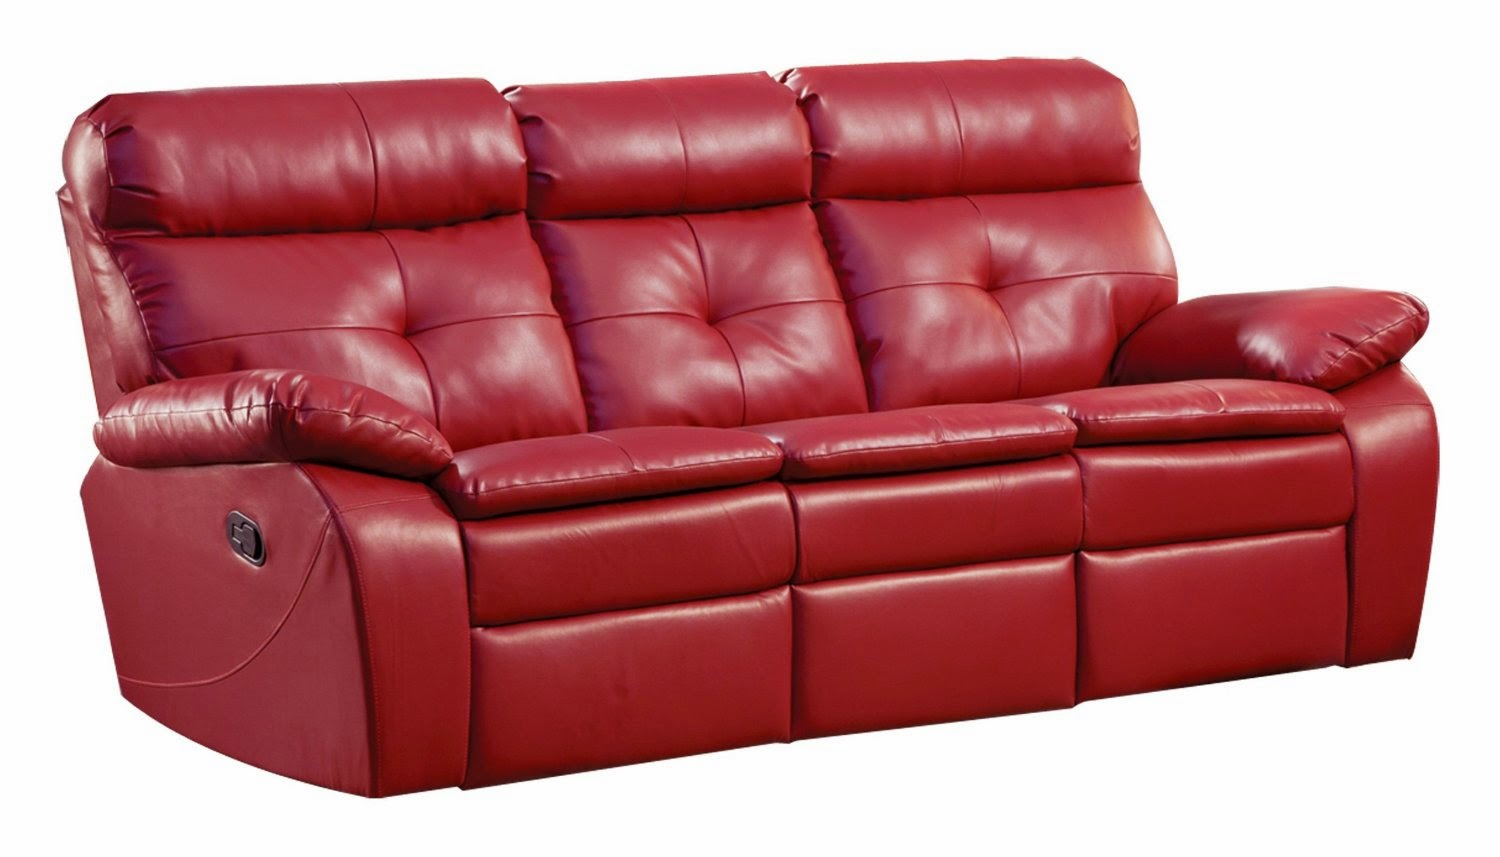 Best Recliner Sofa Brand Recommendation